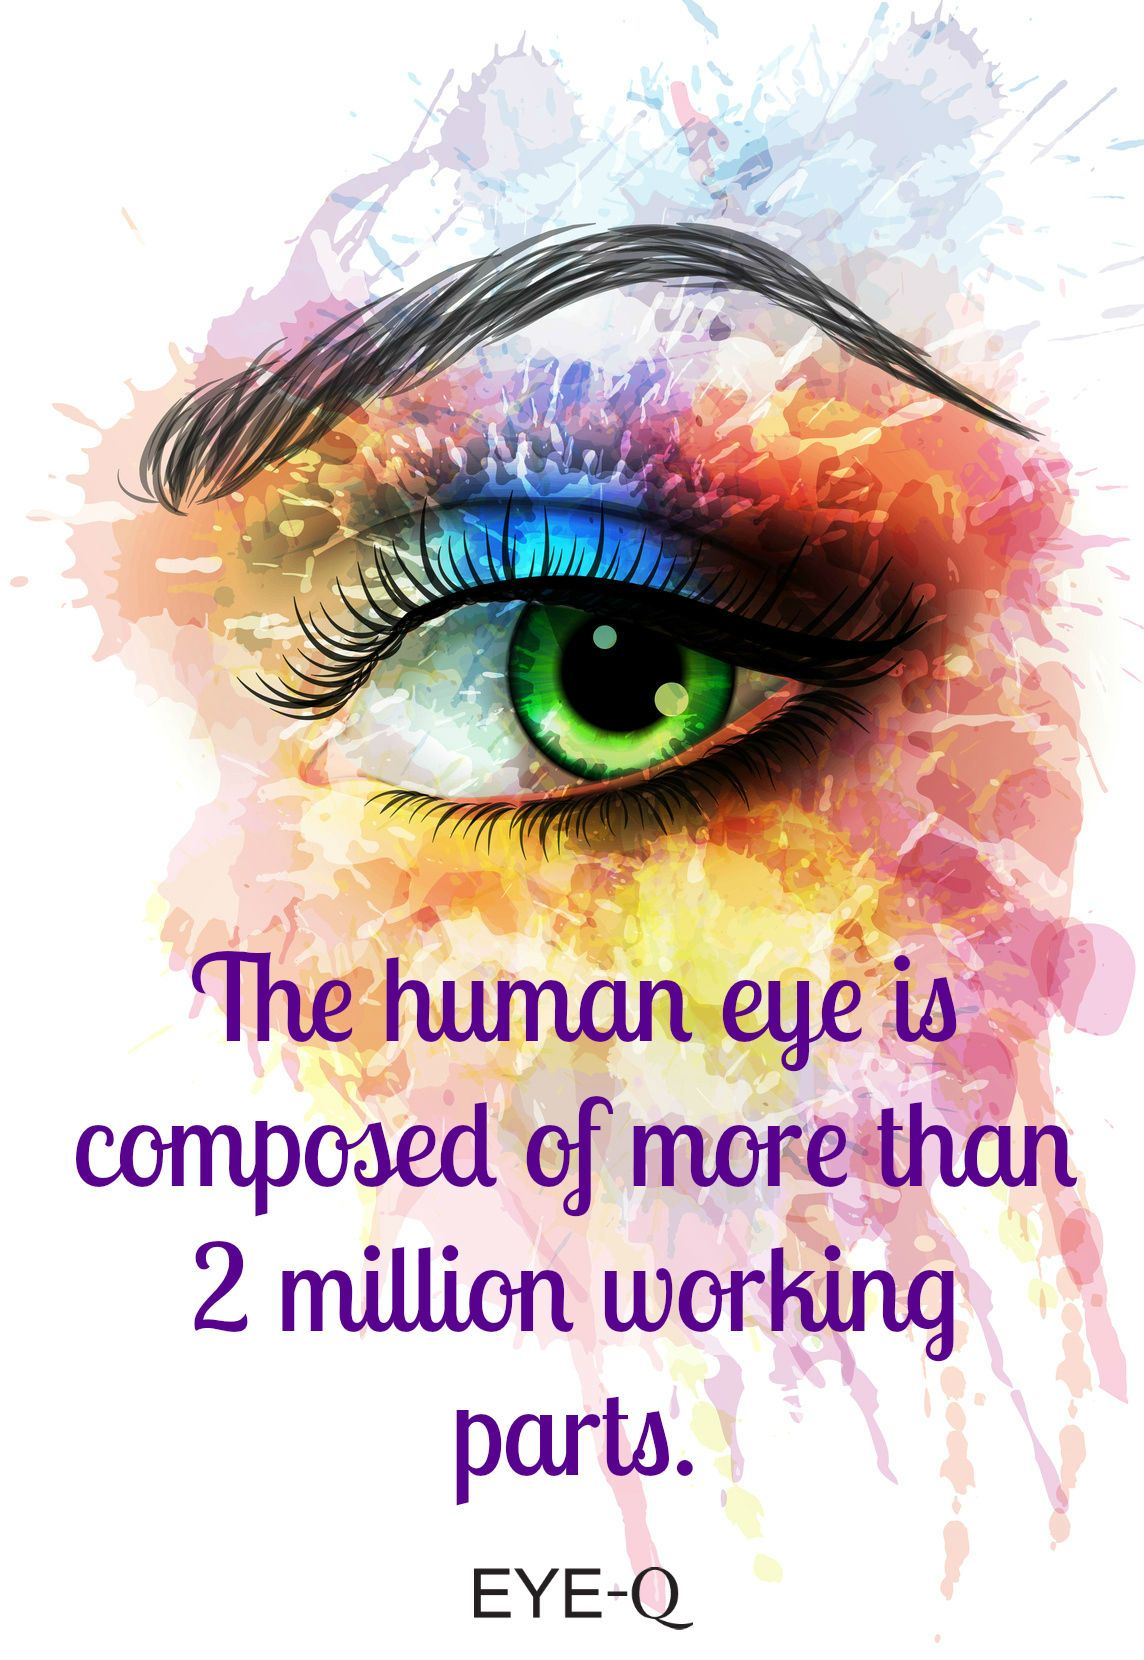 The Human Eye Is Composed Of More Than 2 Million Working